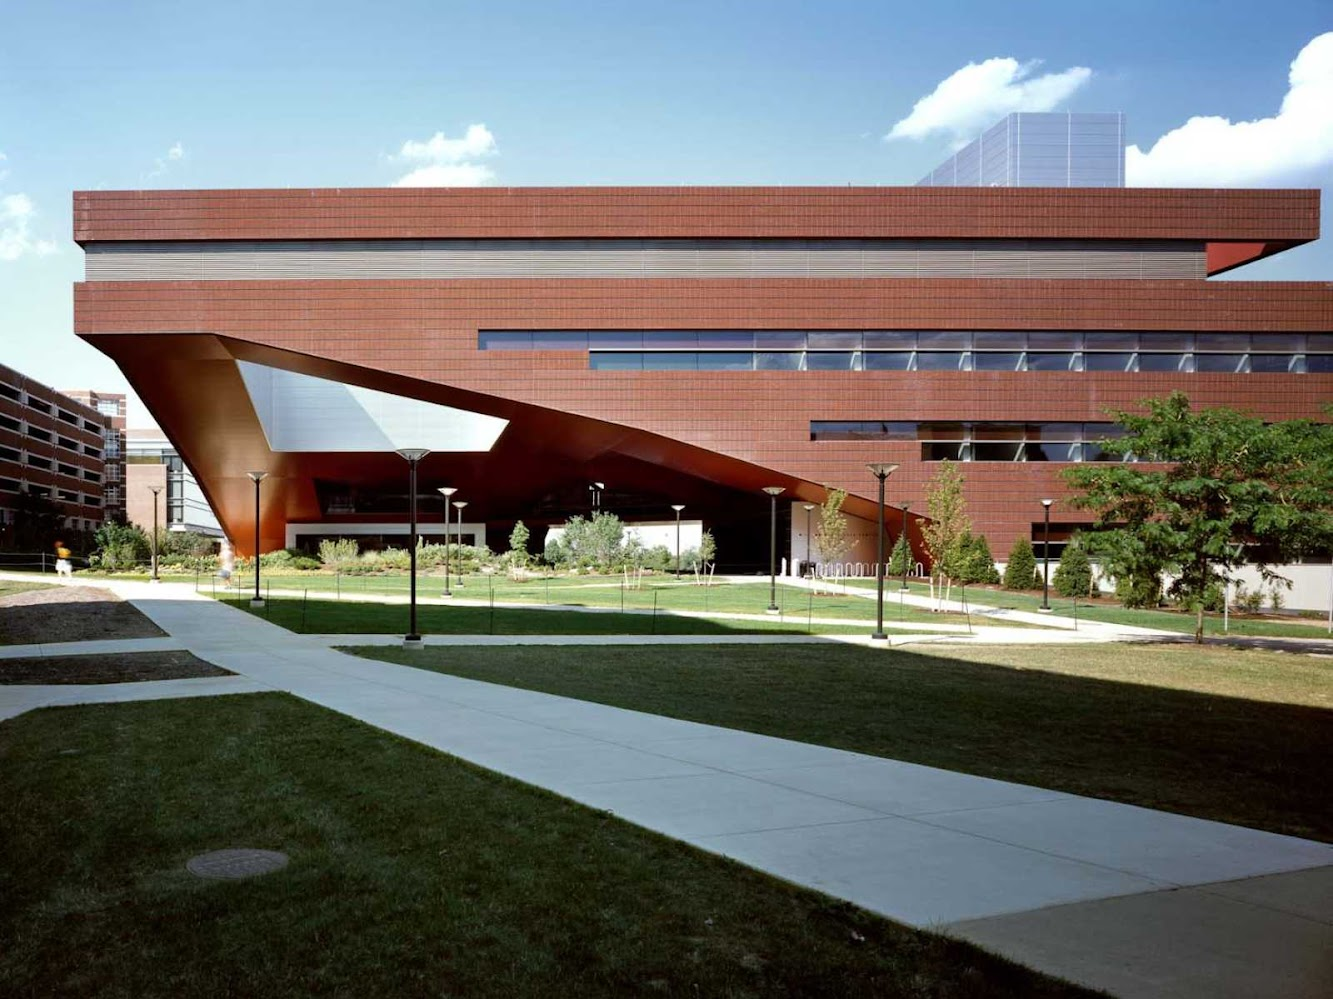 State College, Pennsylvania, Stati Uniti: Millennium Science Complex by Rafael ViÑOly Architects